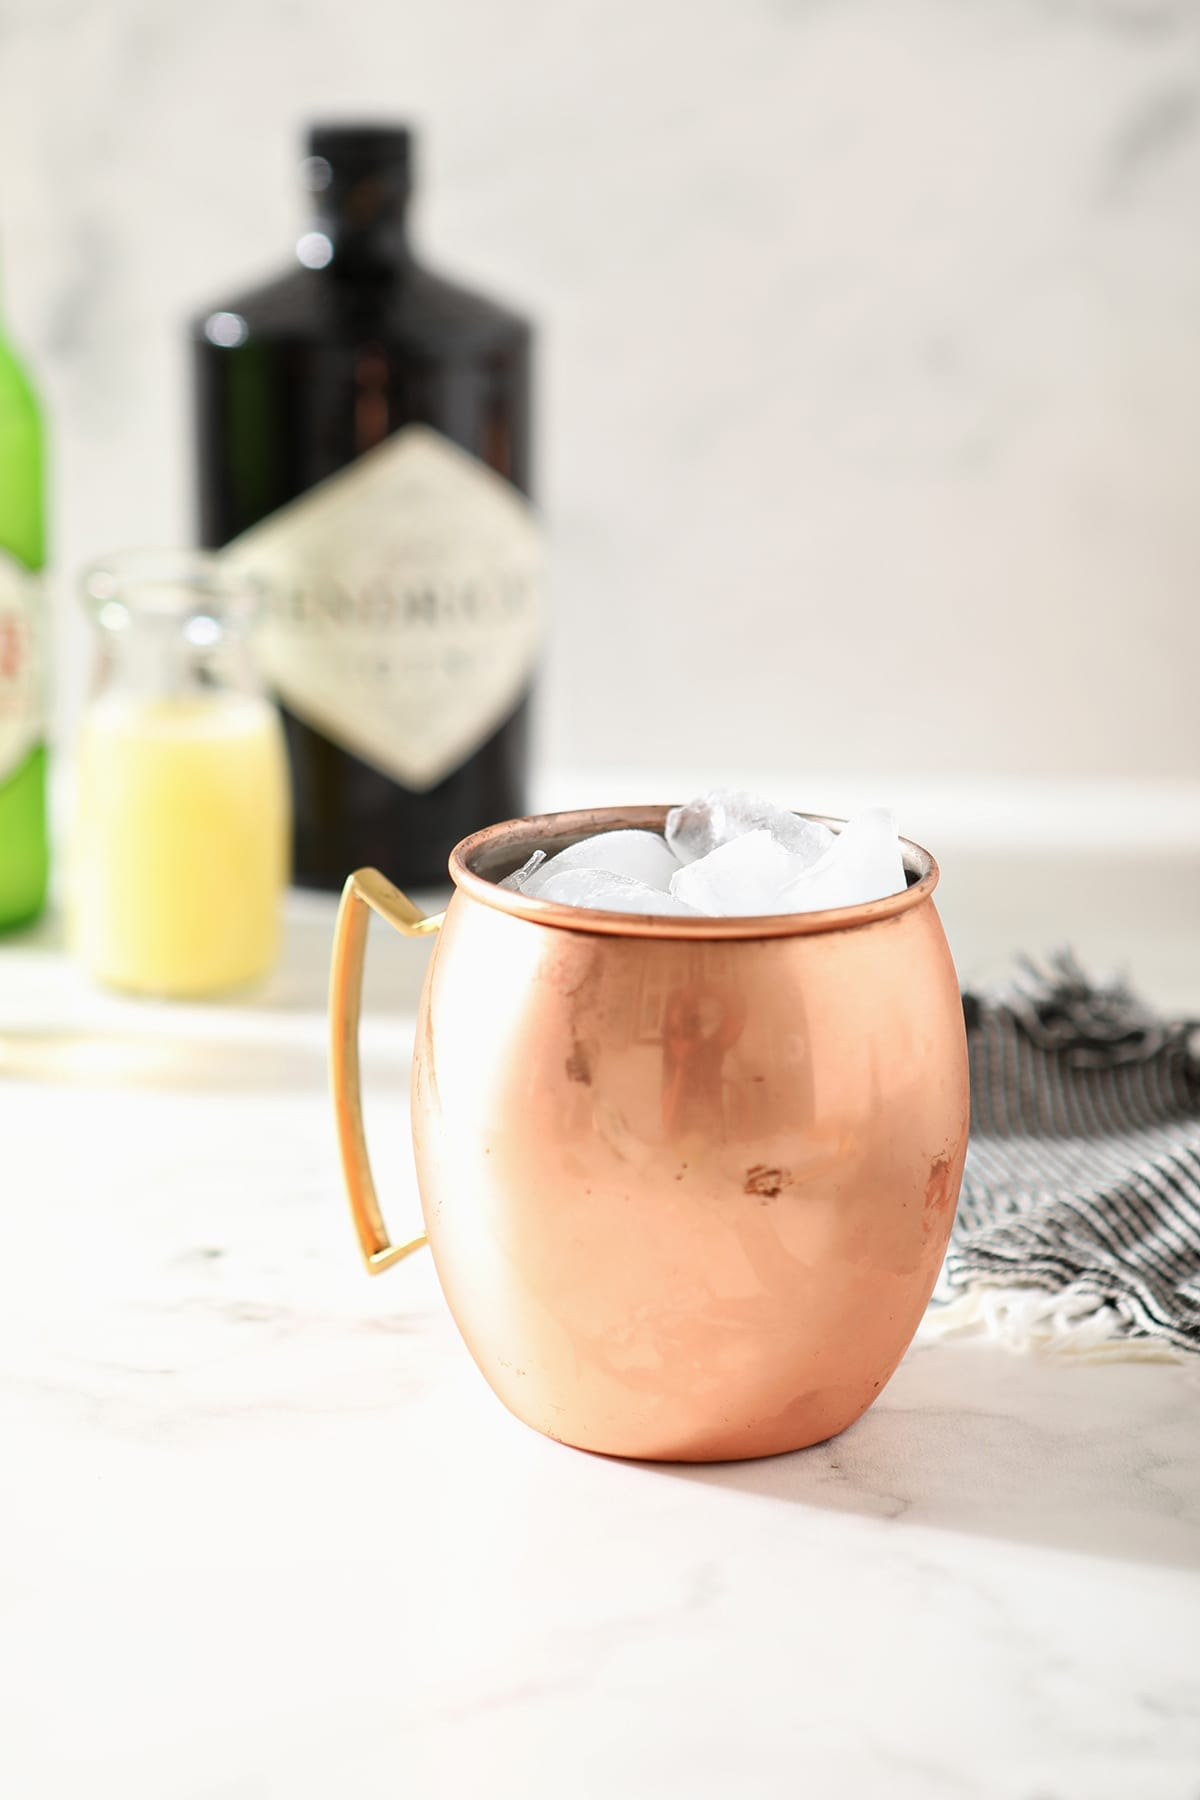 A copper mug full of ice sits on a marble surface in front of a bottle of gin, ginger beer and lime juice